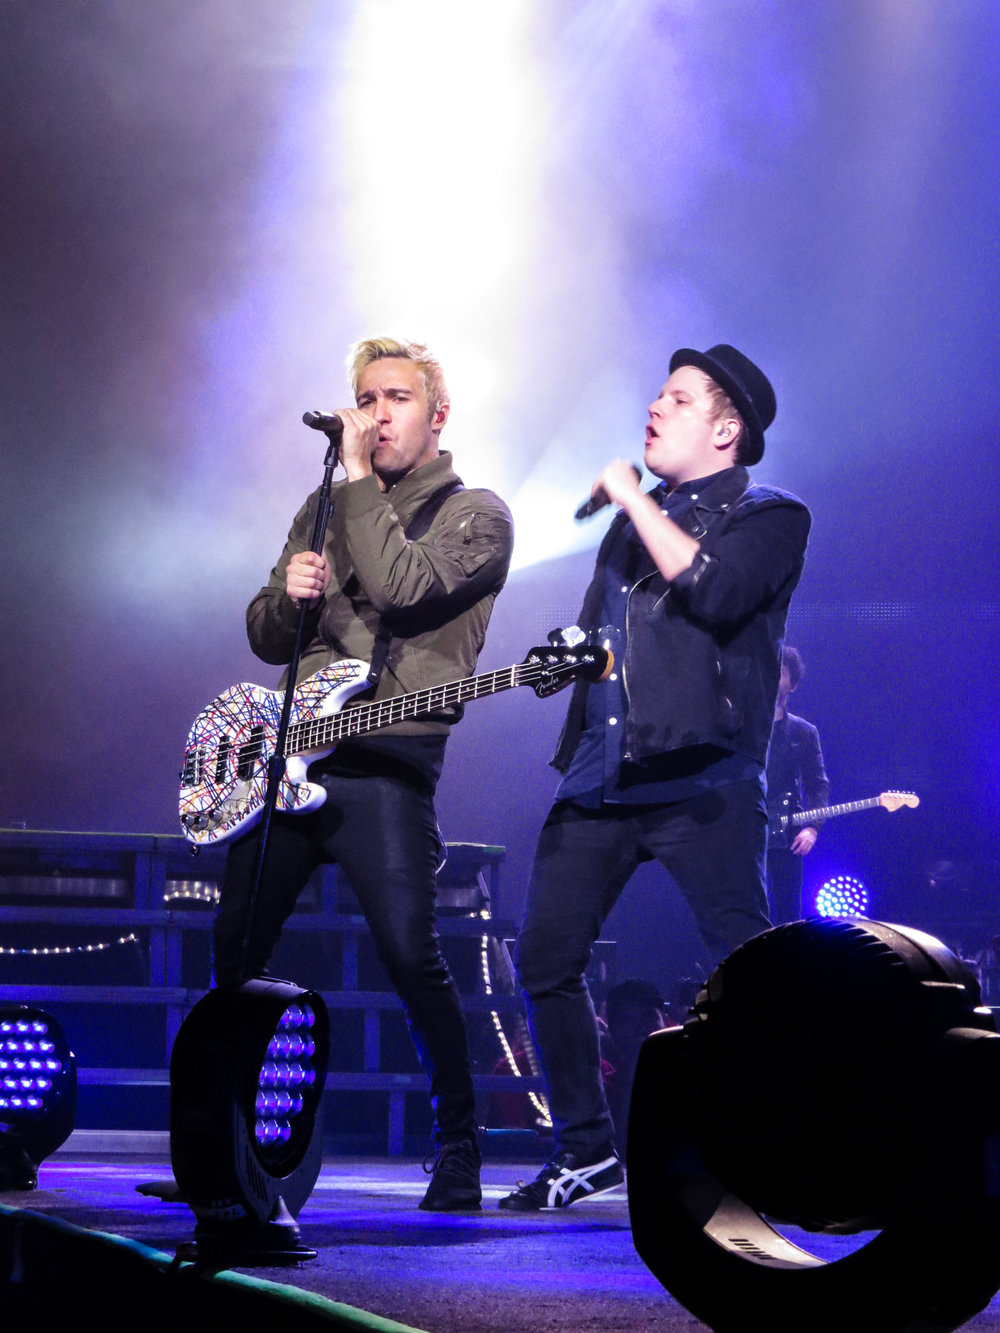 Pete Wentz & Patrick Stump of Fall Out Boy